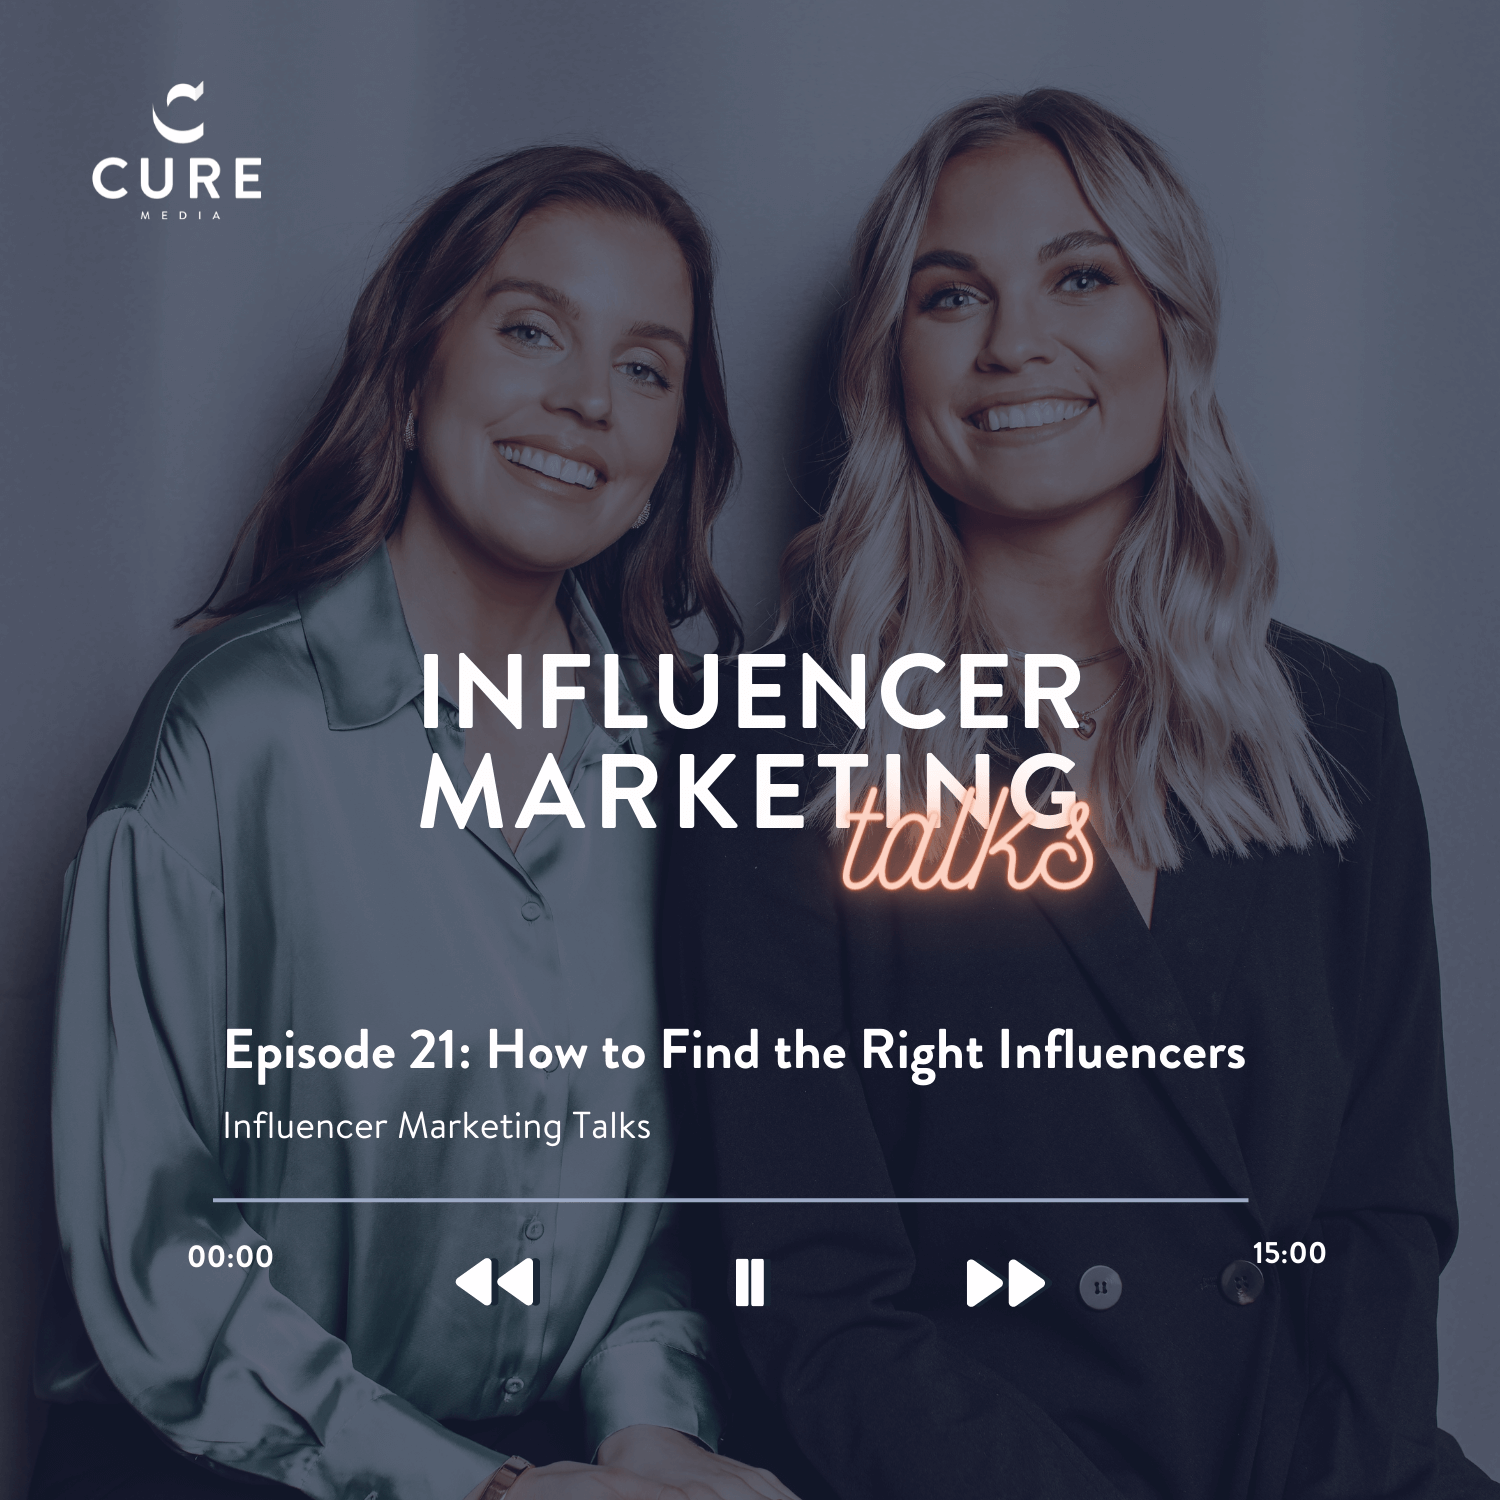 Find the Right Influencers